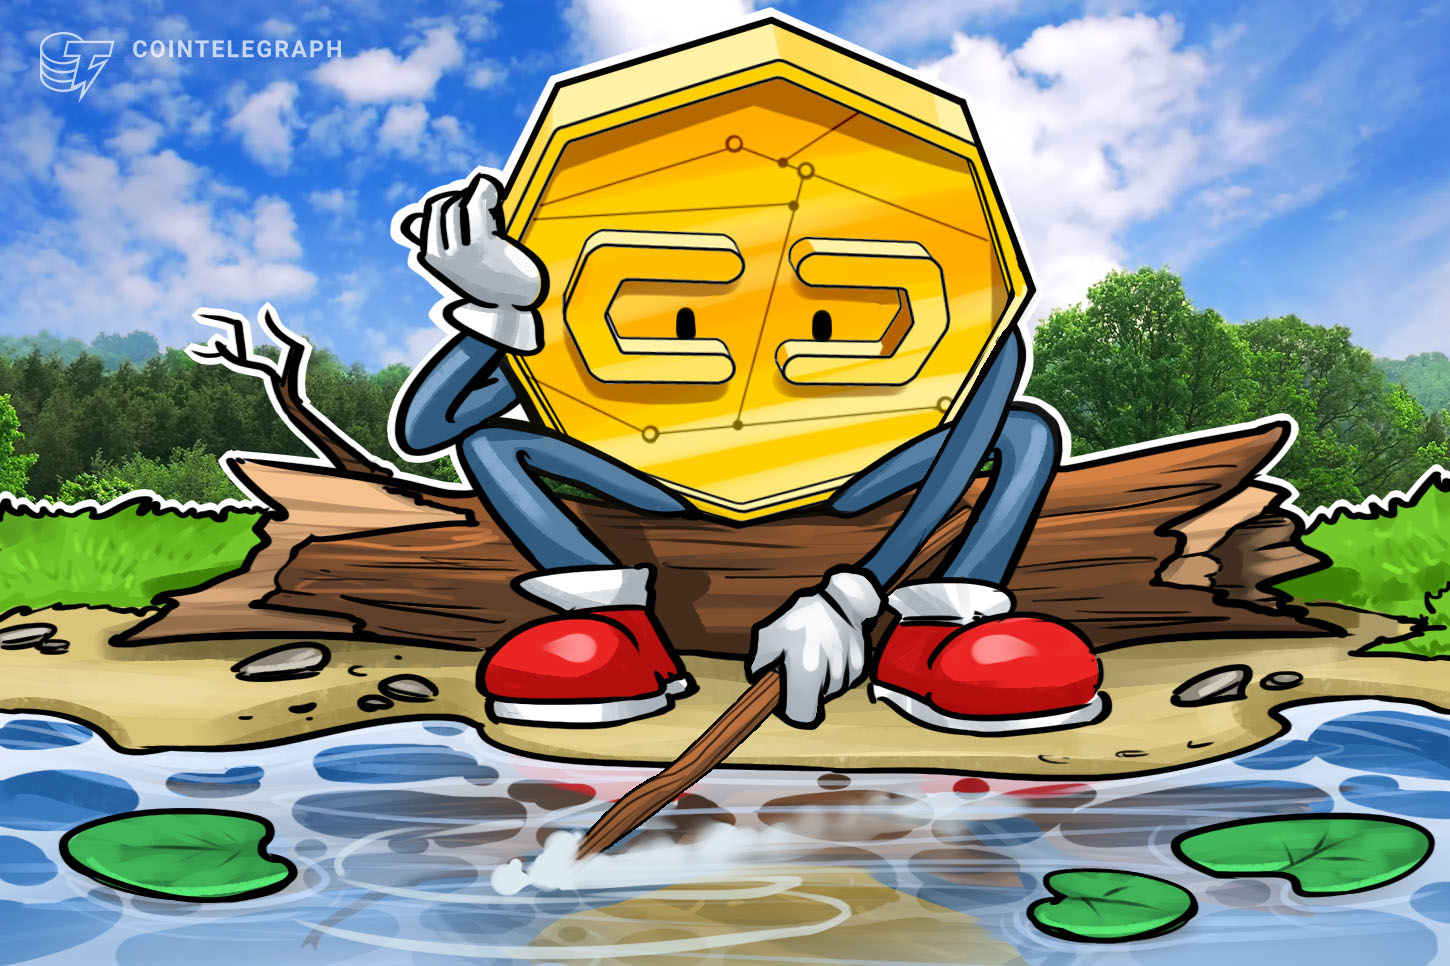 Crypto hedge funds and mining regulations: Bad crypto news of the week